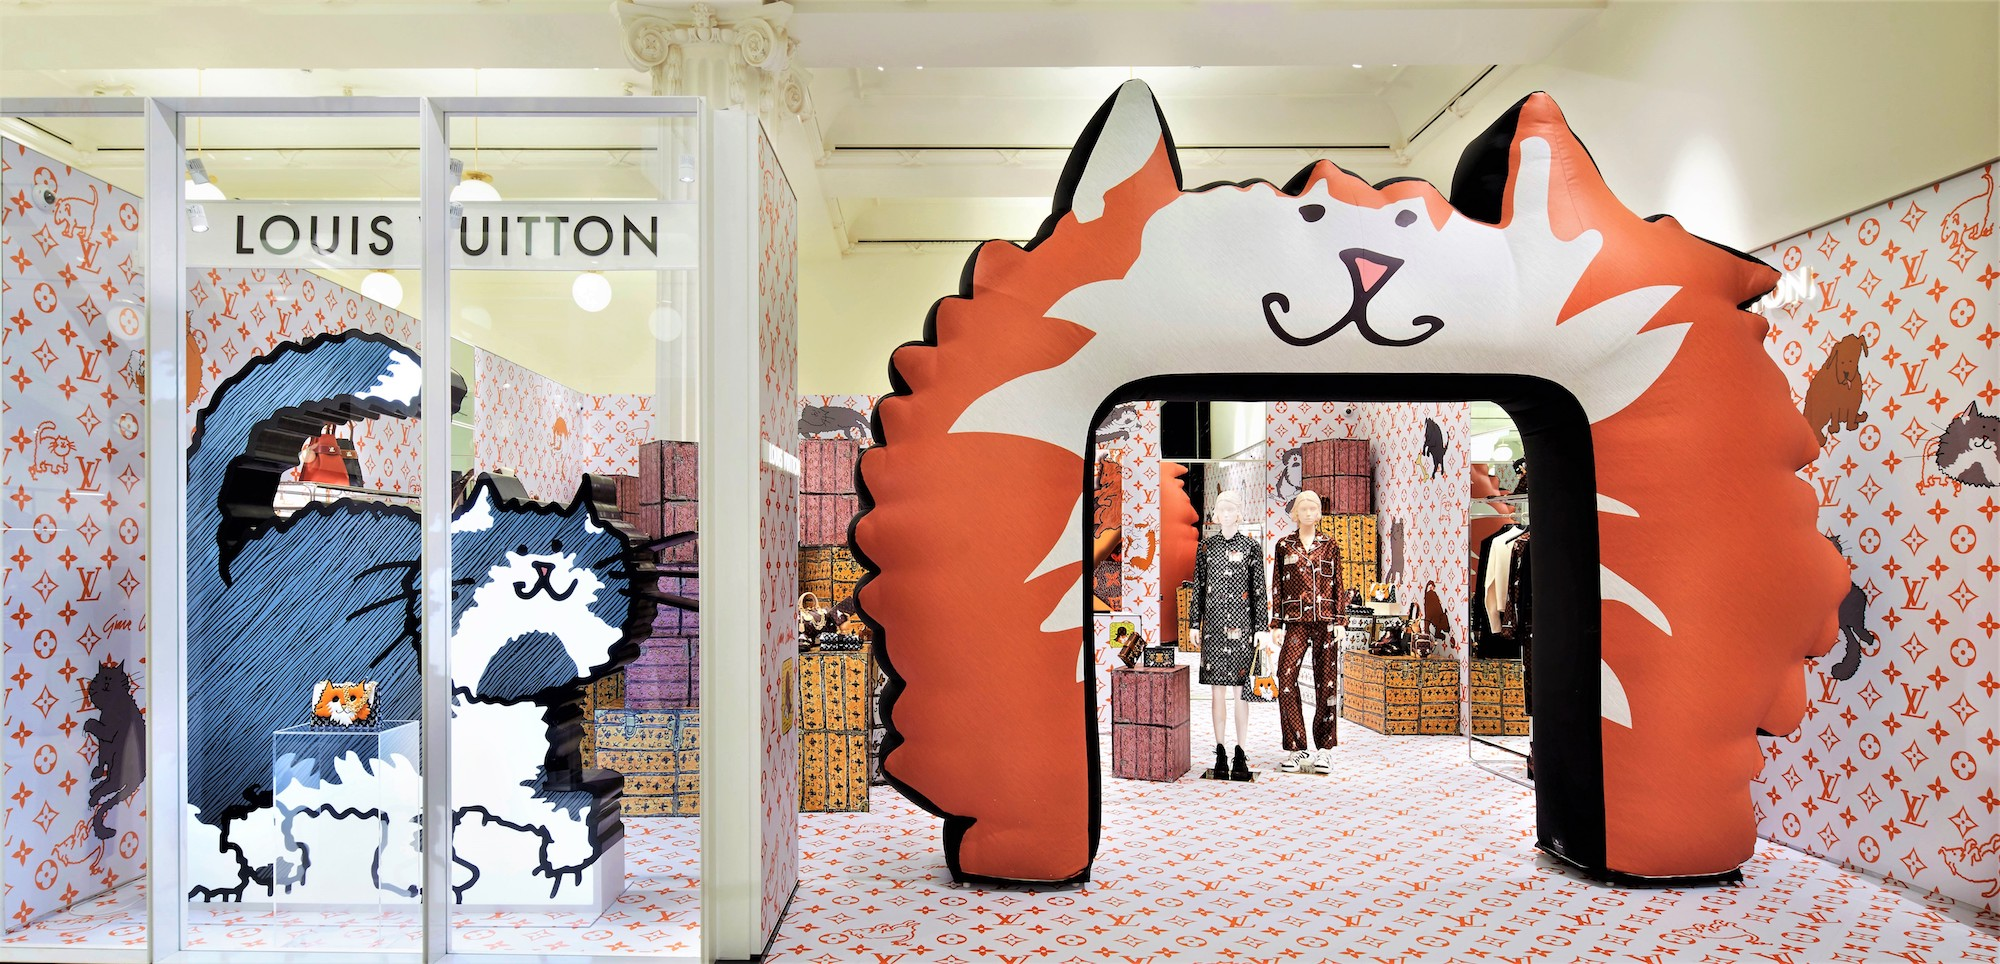 louis vuitton grace coddington popup